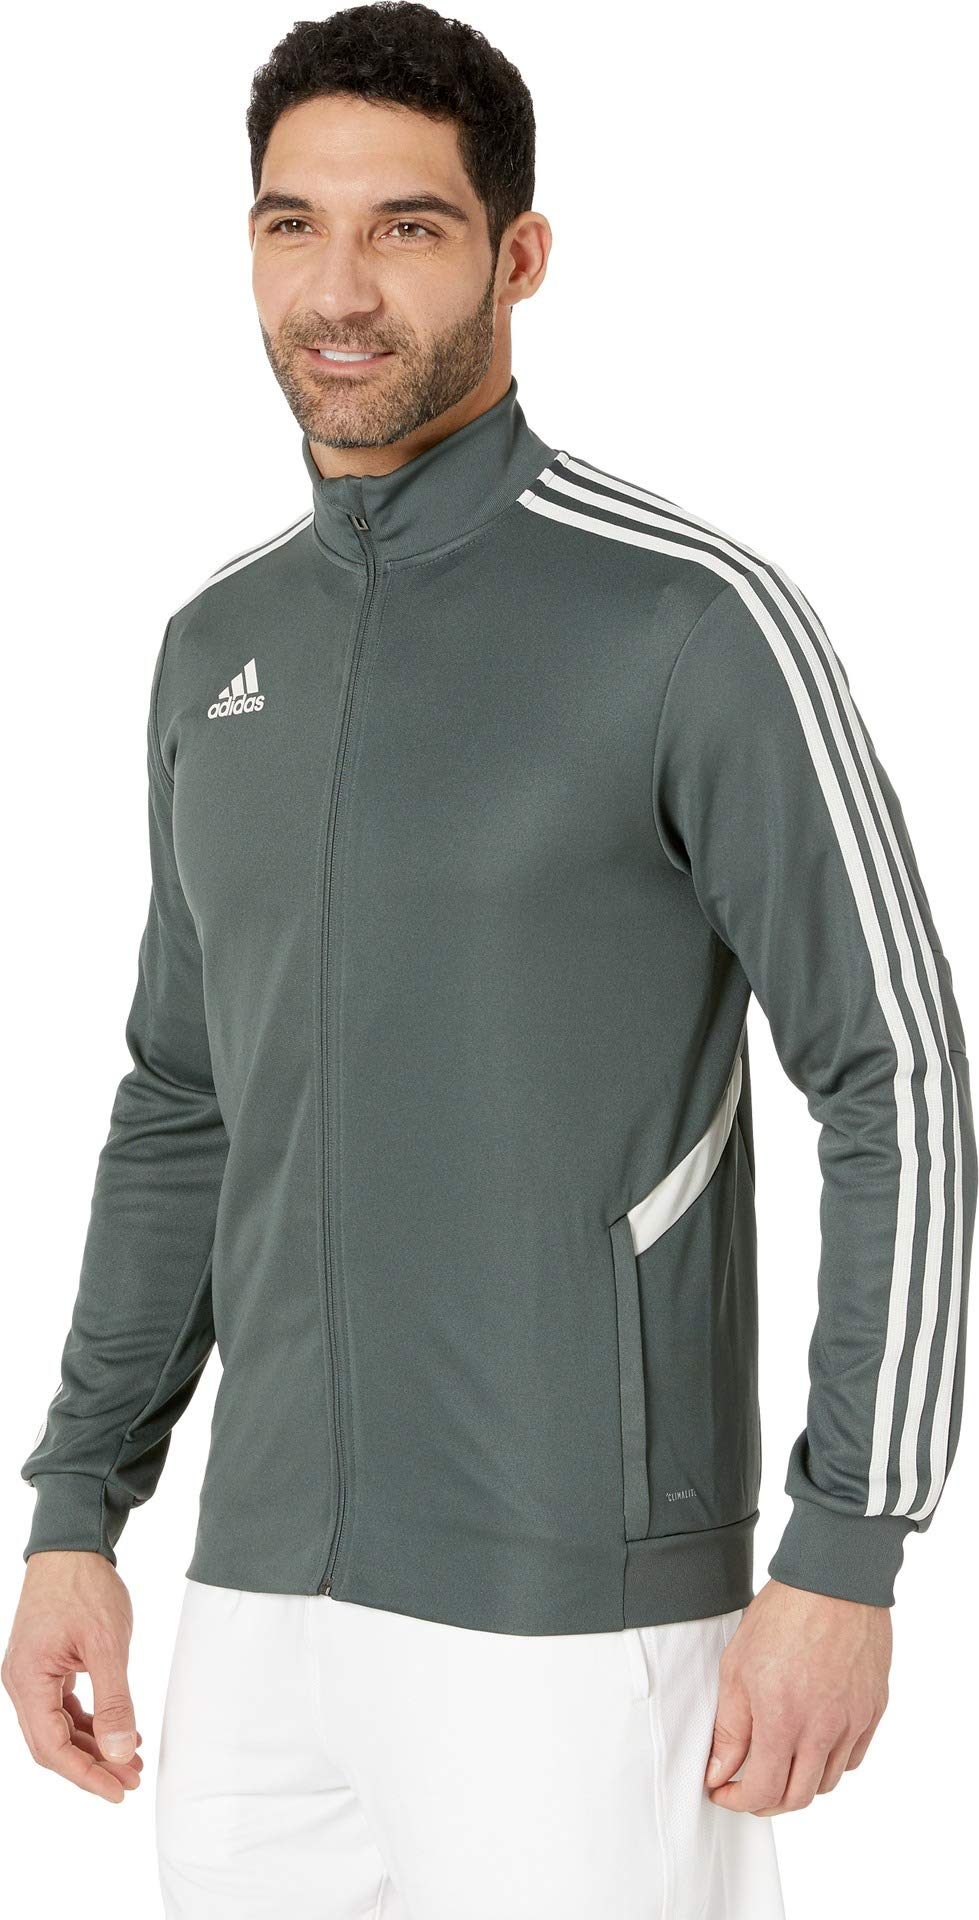 adidas Men's AFS Tiro Track Jacket Legend Ivy/Raw White X-Large by adidas